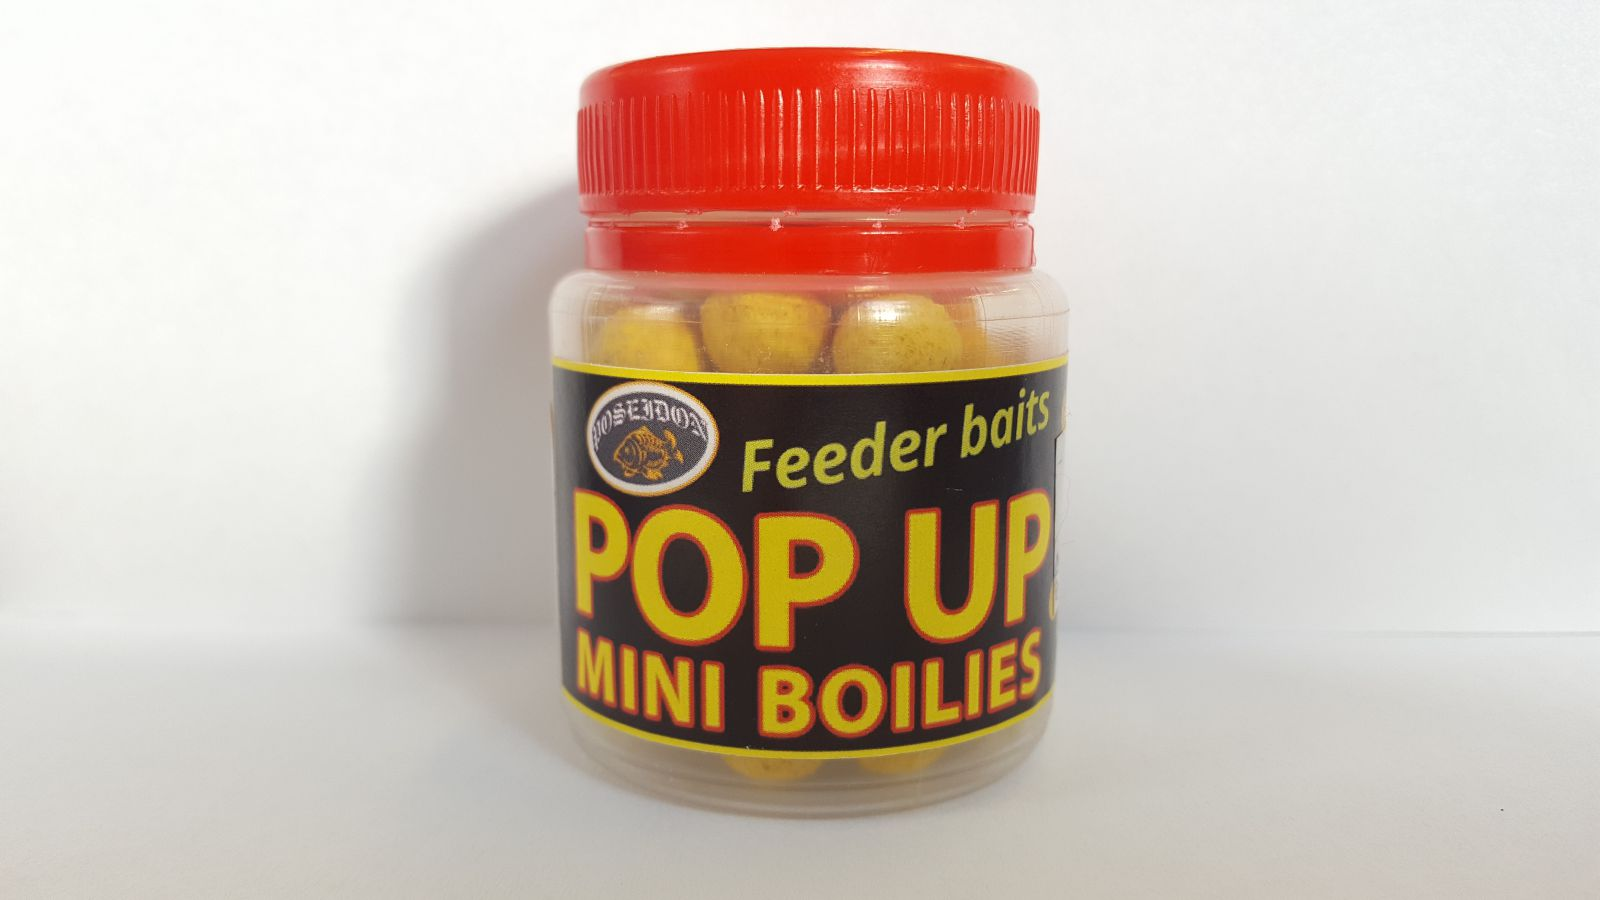 Mini Pop-Up Boilies